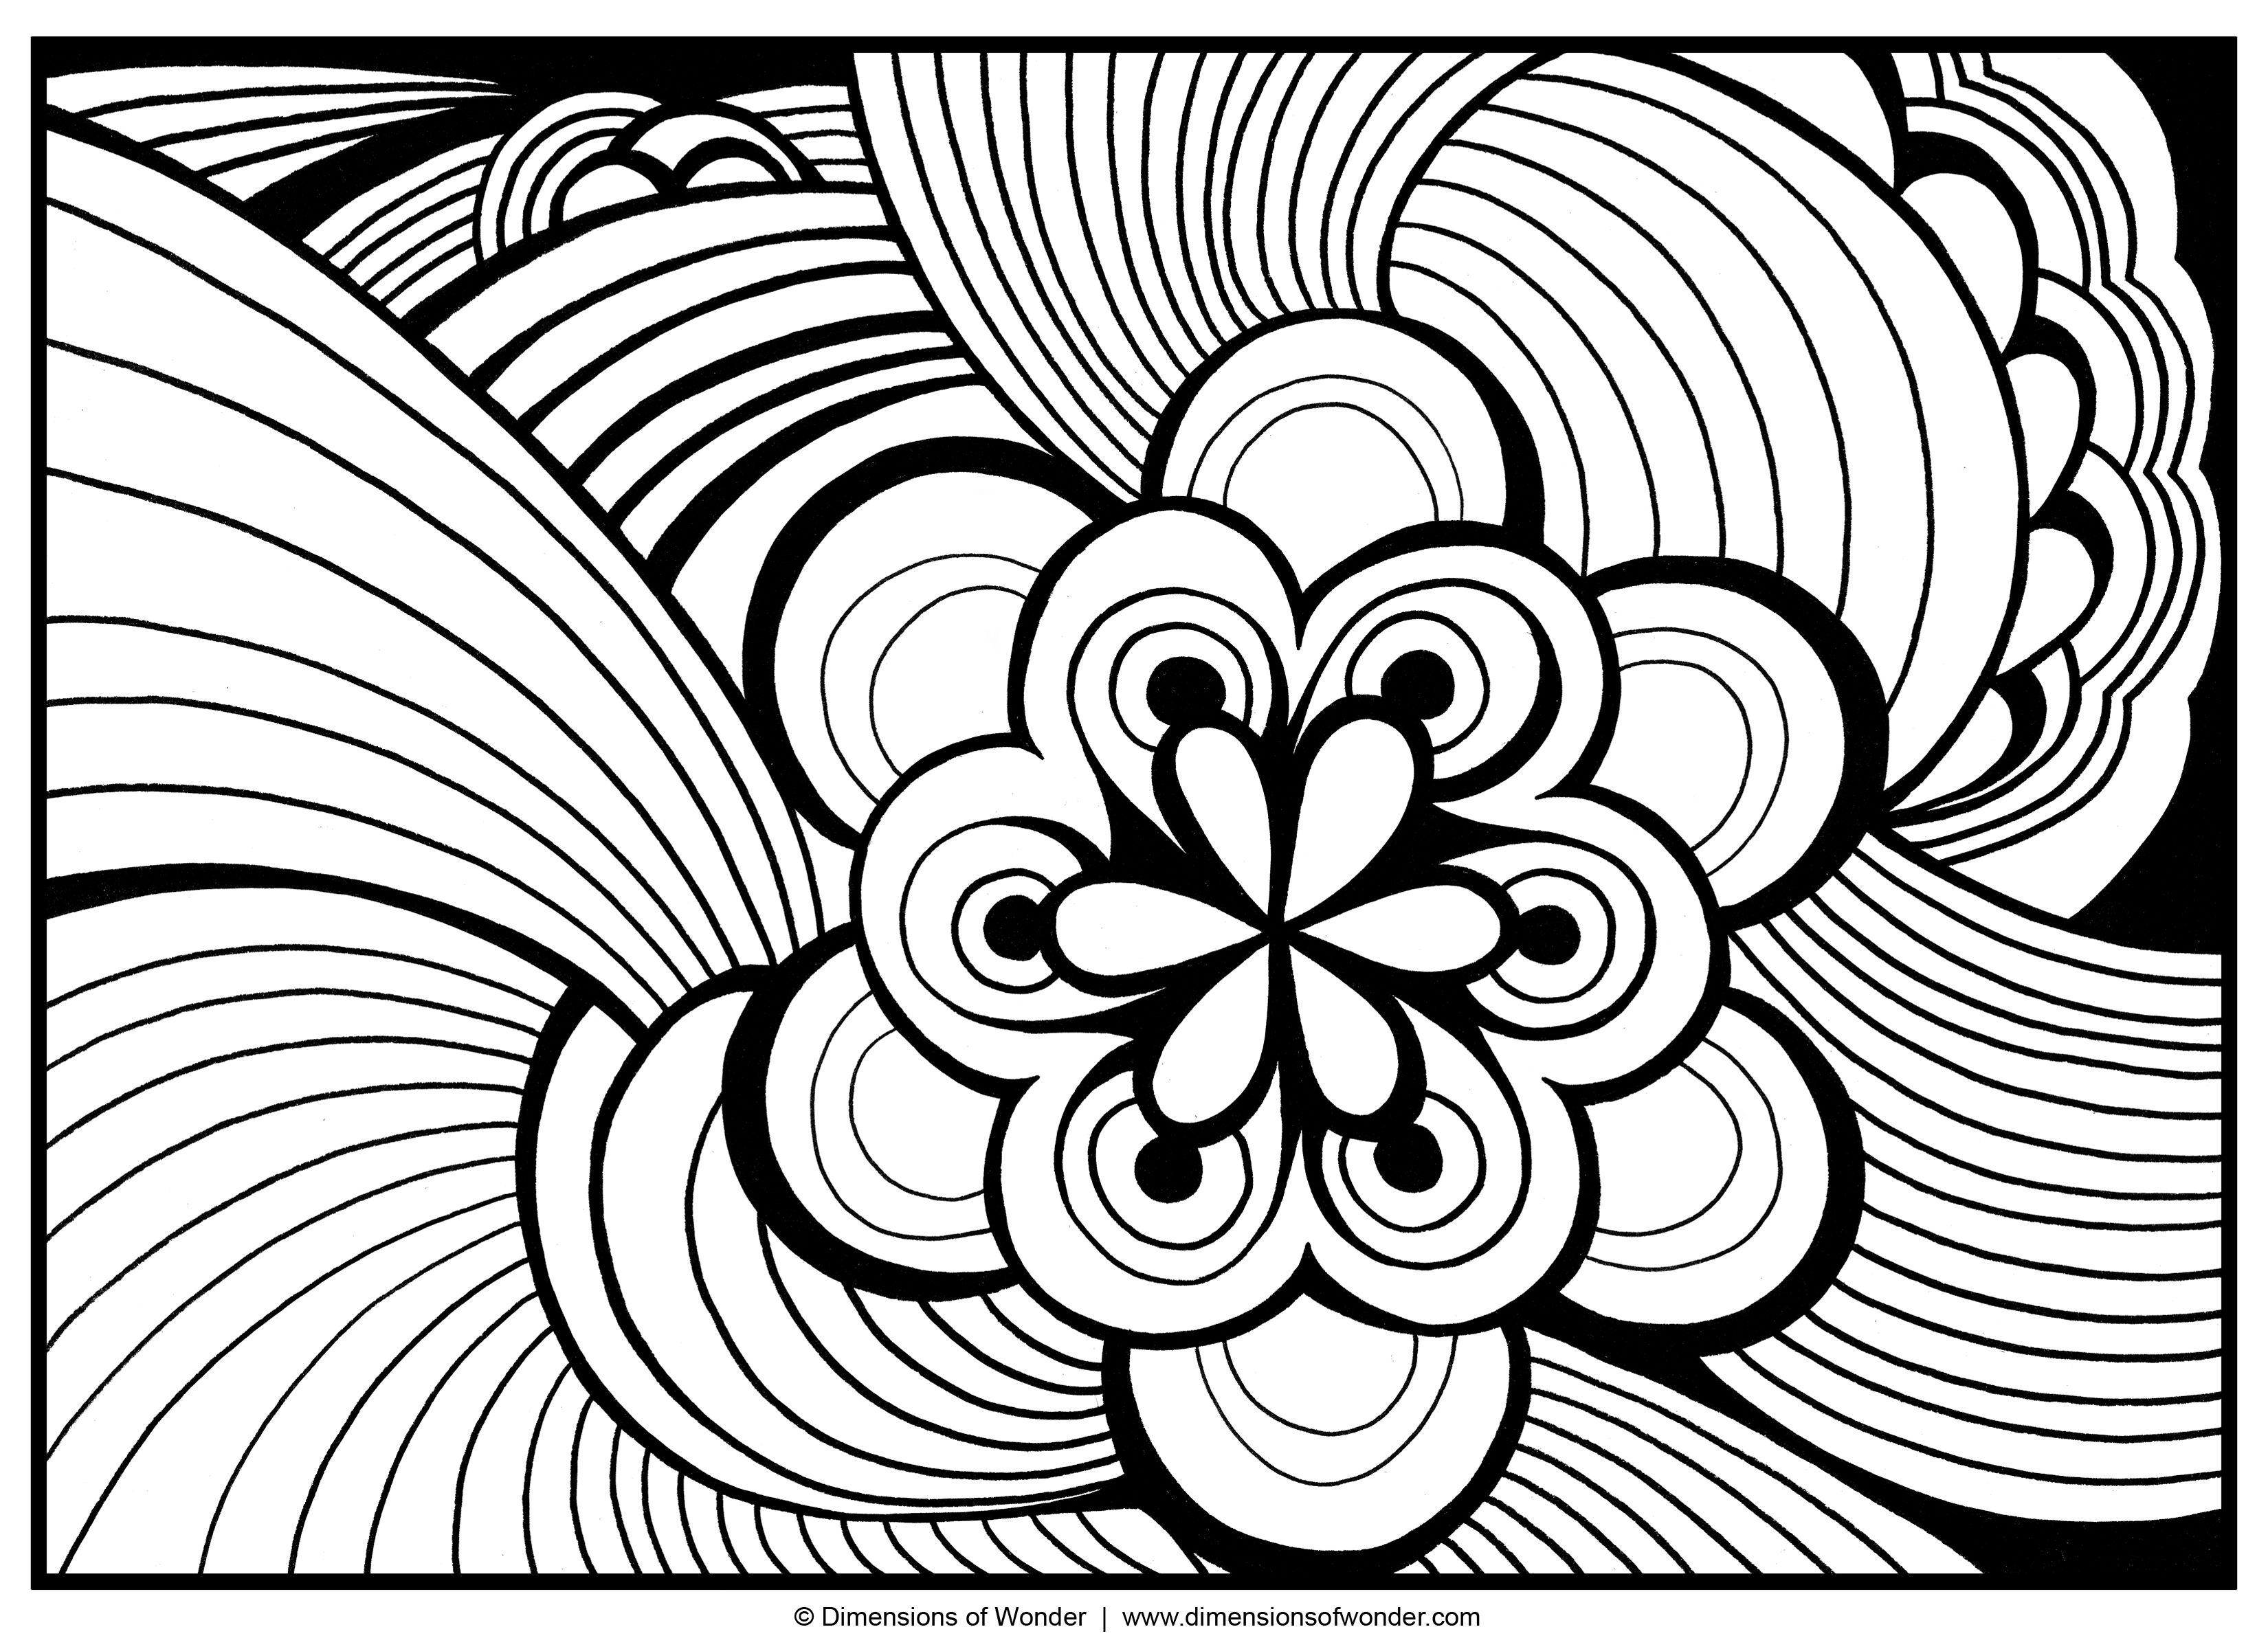 cool abstract coloring pages 27 cool coloring books for adults in 2020 shape coloring pages coloring cool abstract